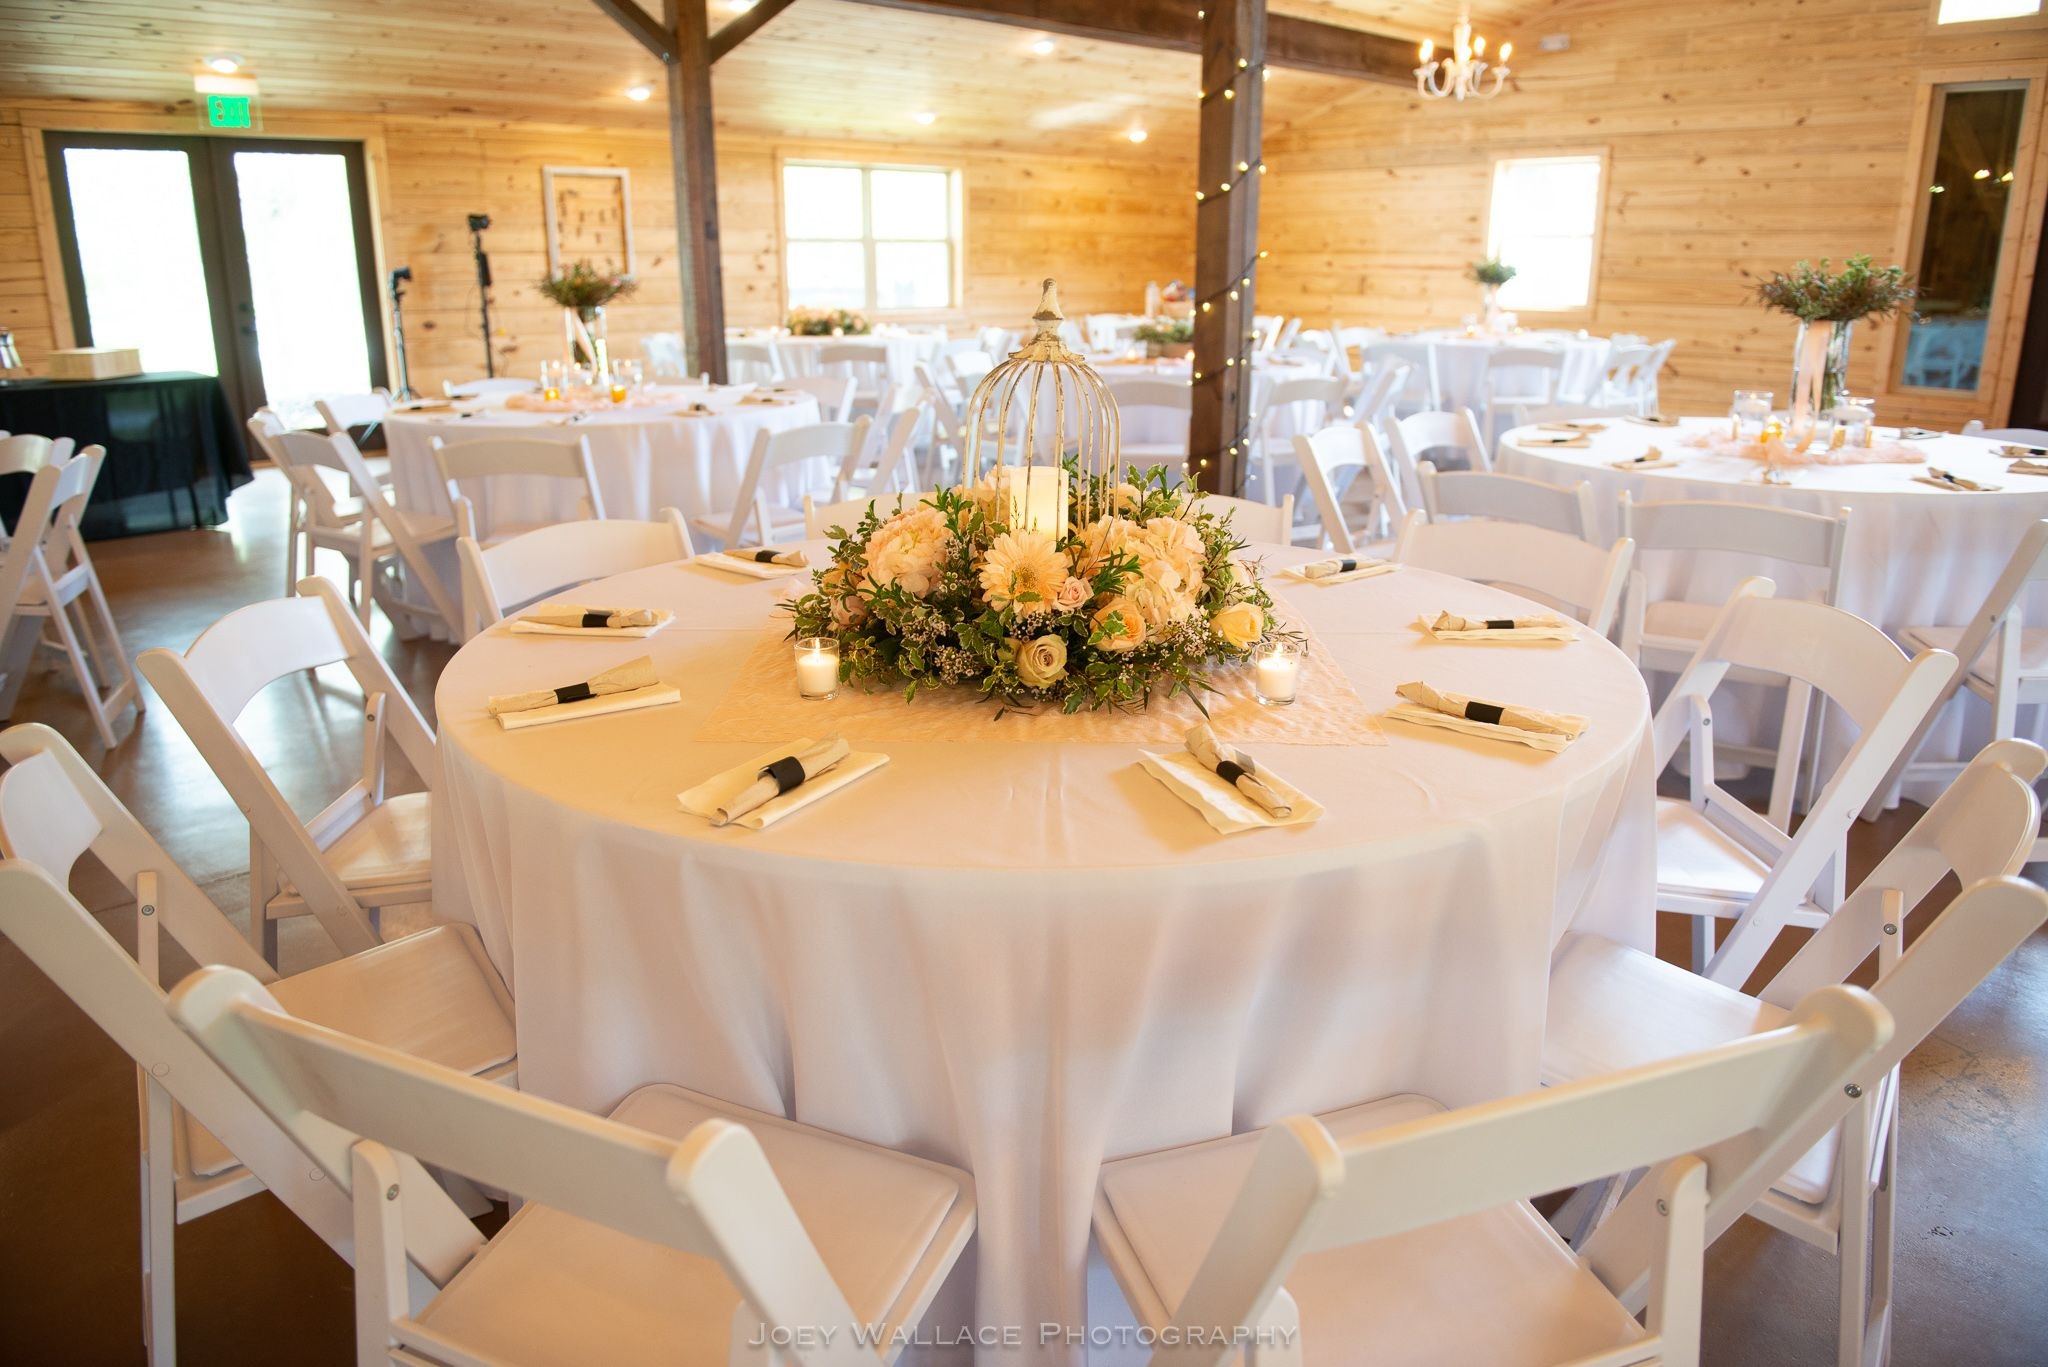 Joey Wallace Photography #Wedding #Weddings #Flowers #Florals #Bouquets #Bouquet #